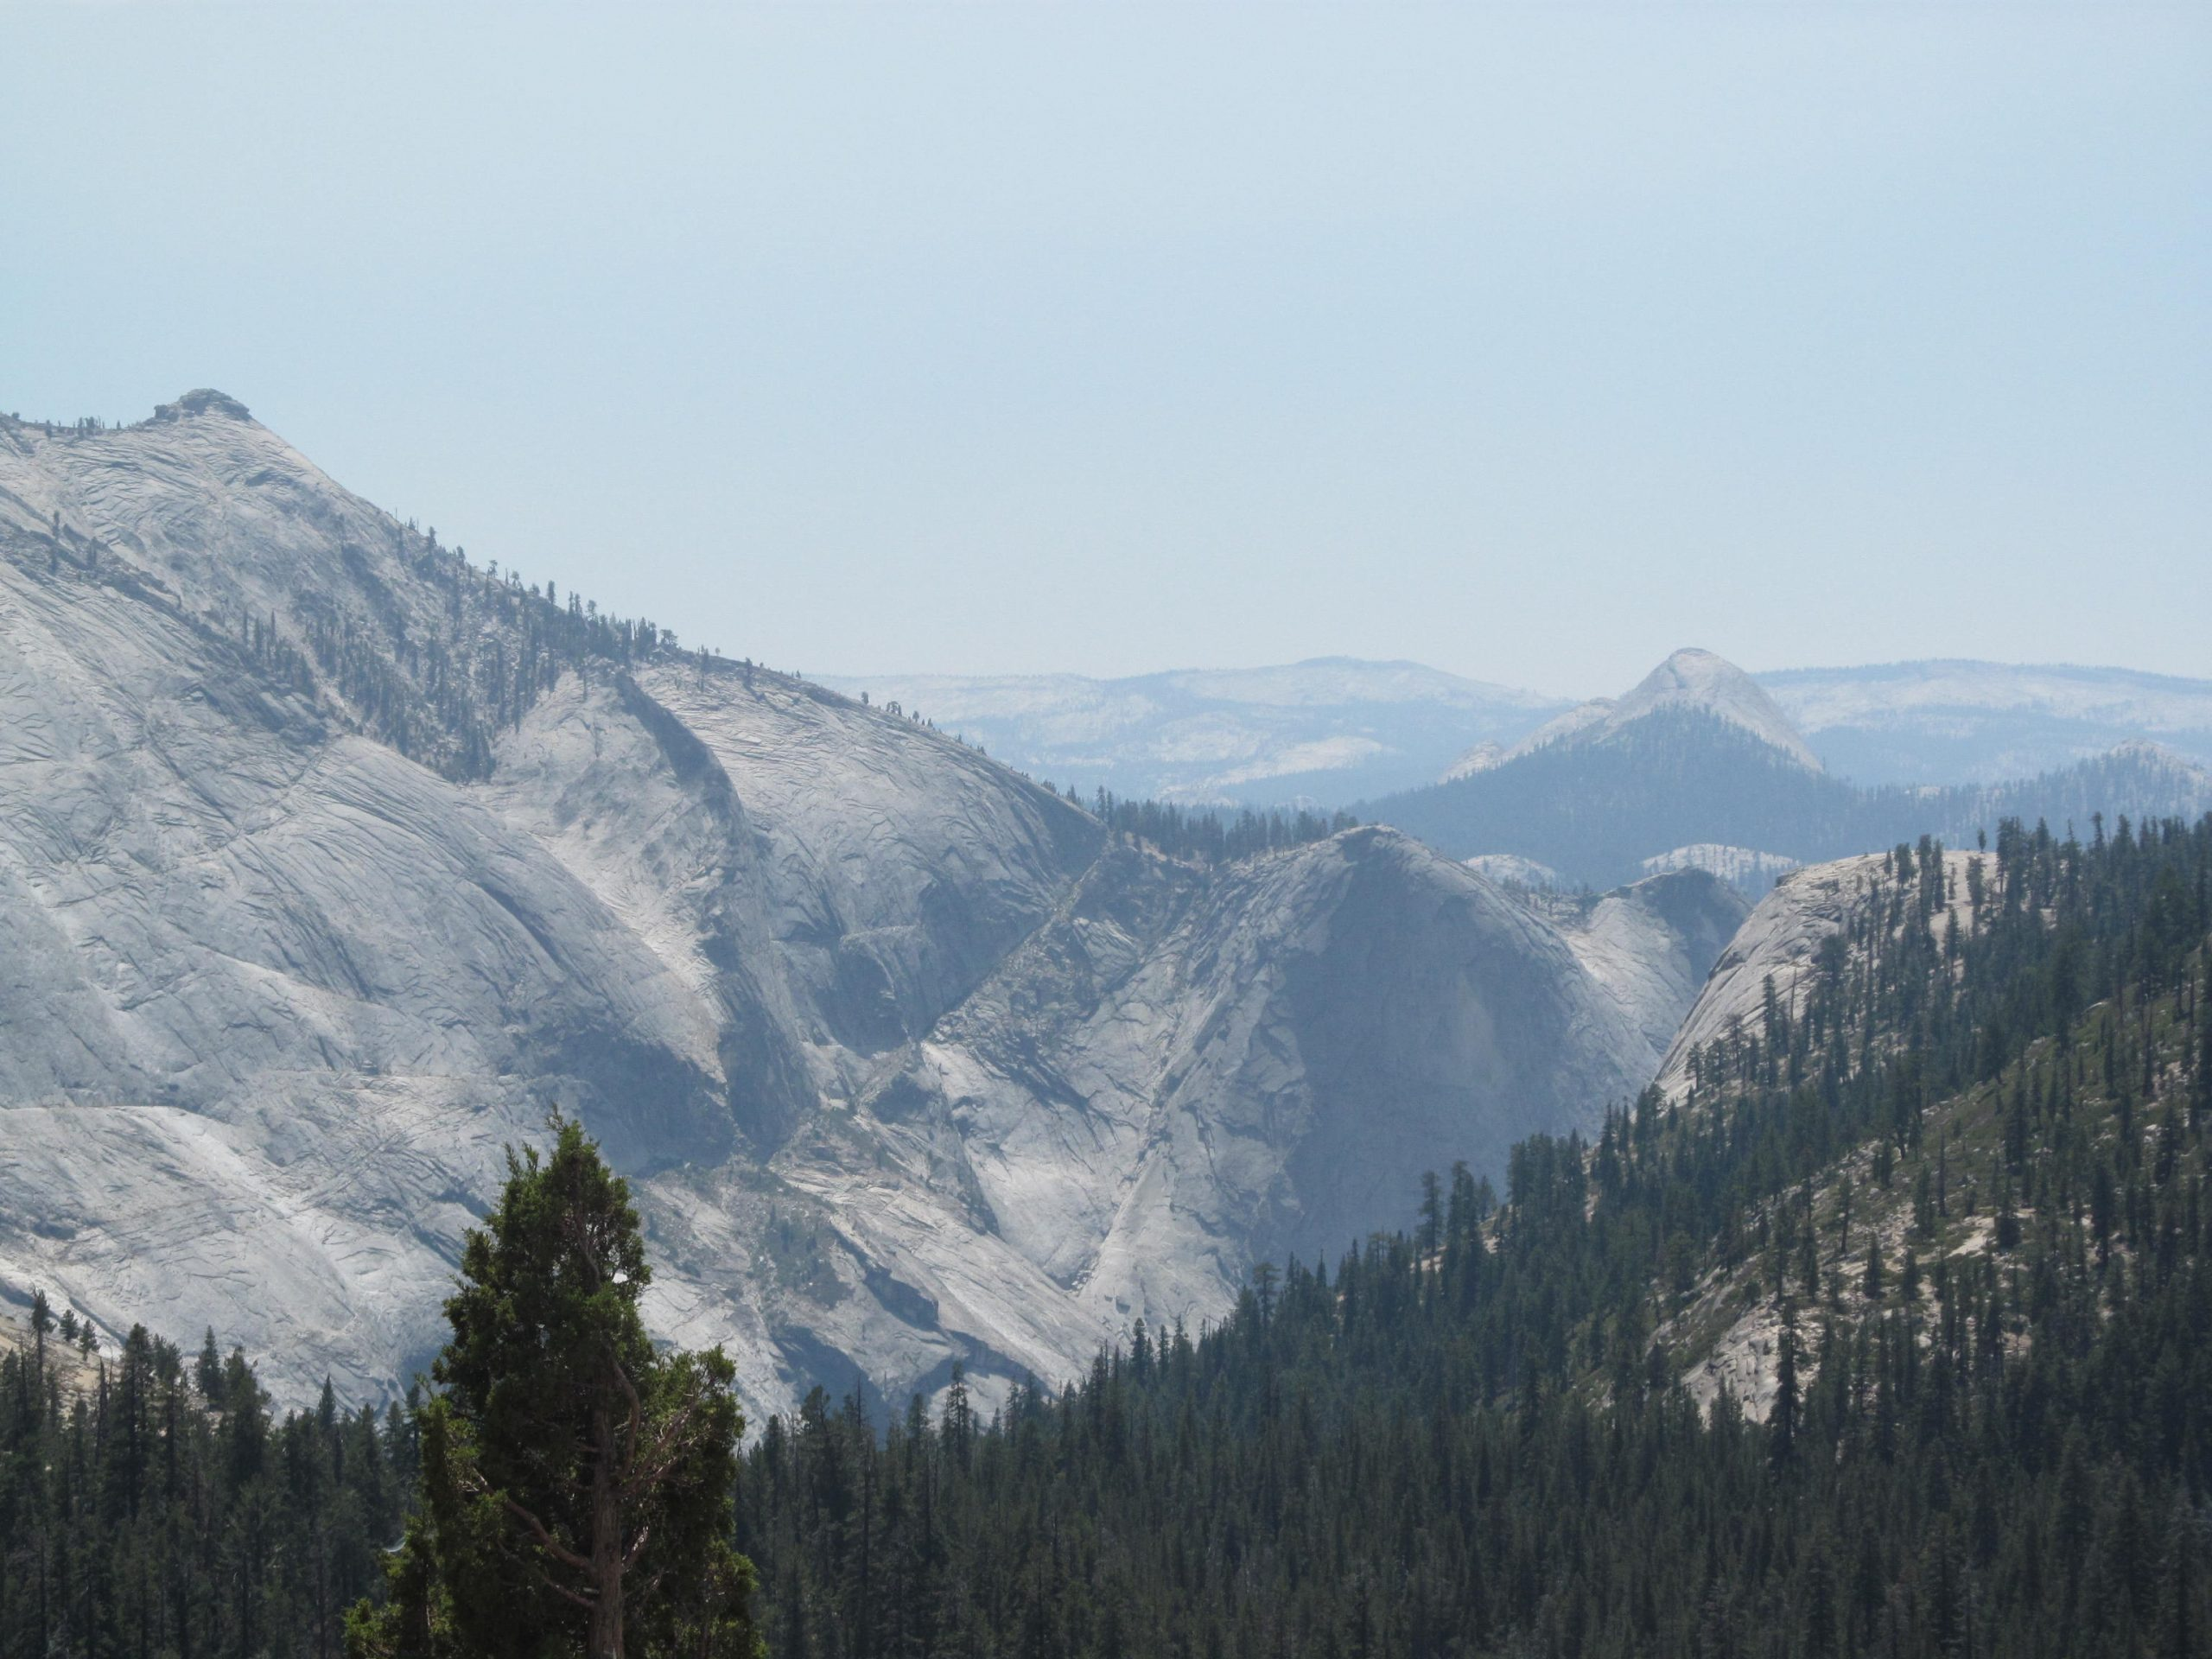 The view from Big Oak Flat Road in Yosemite